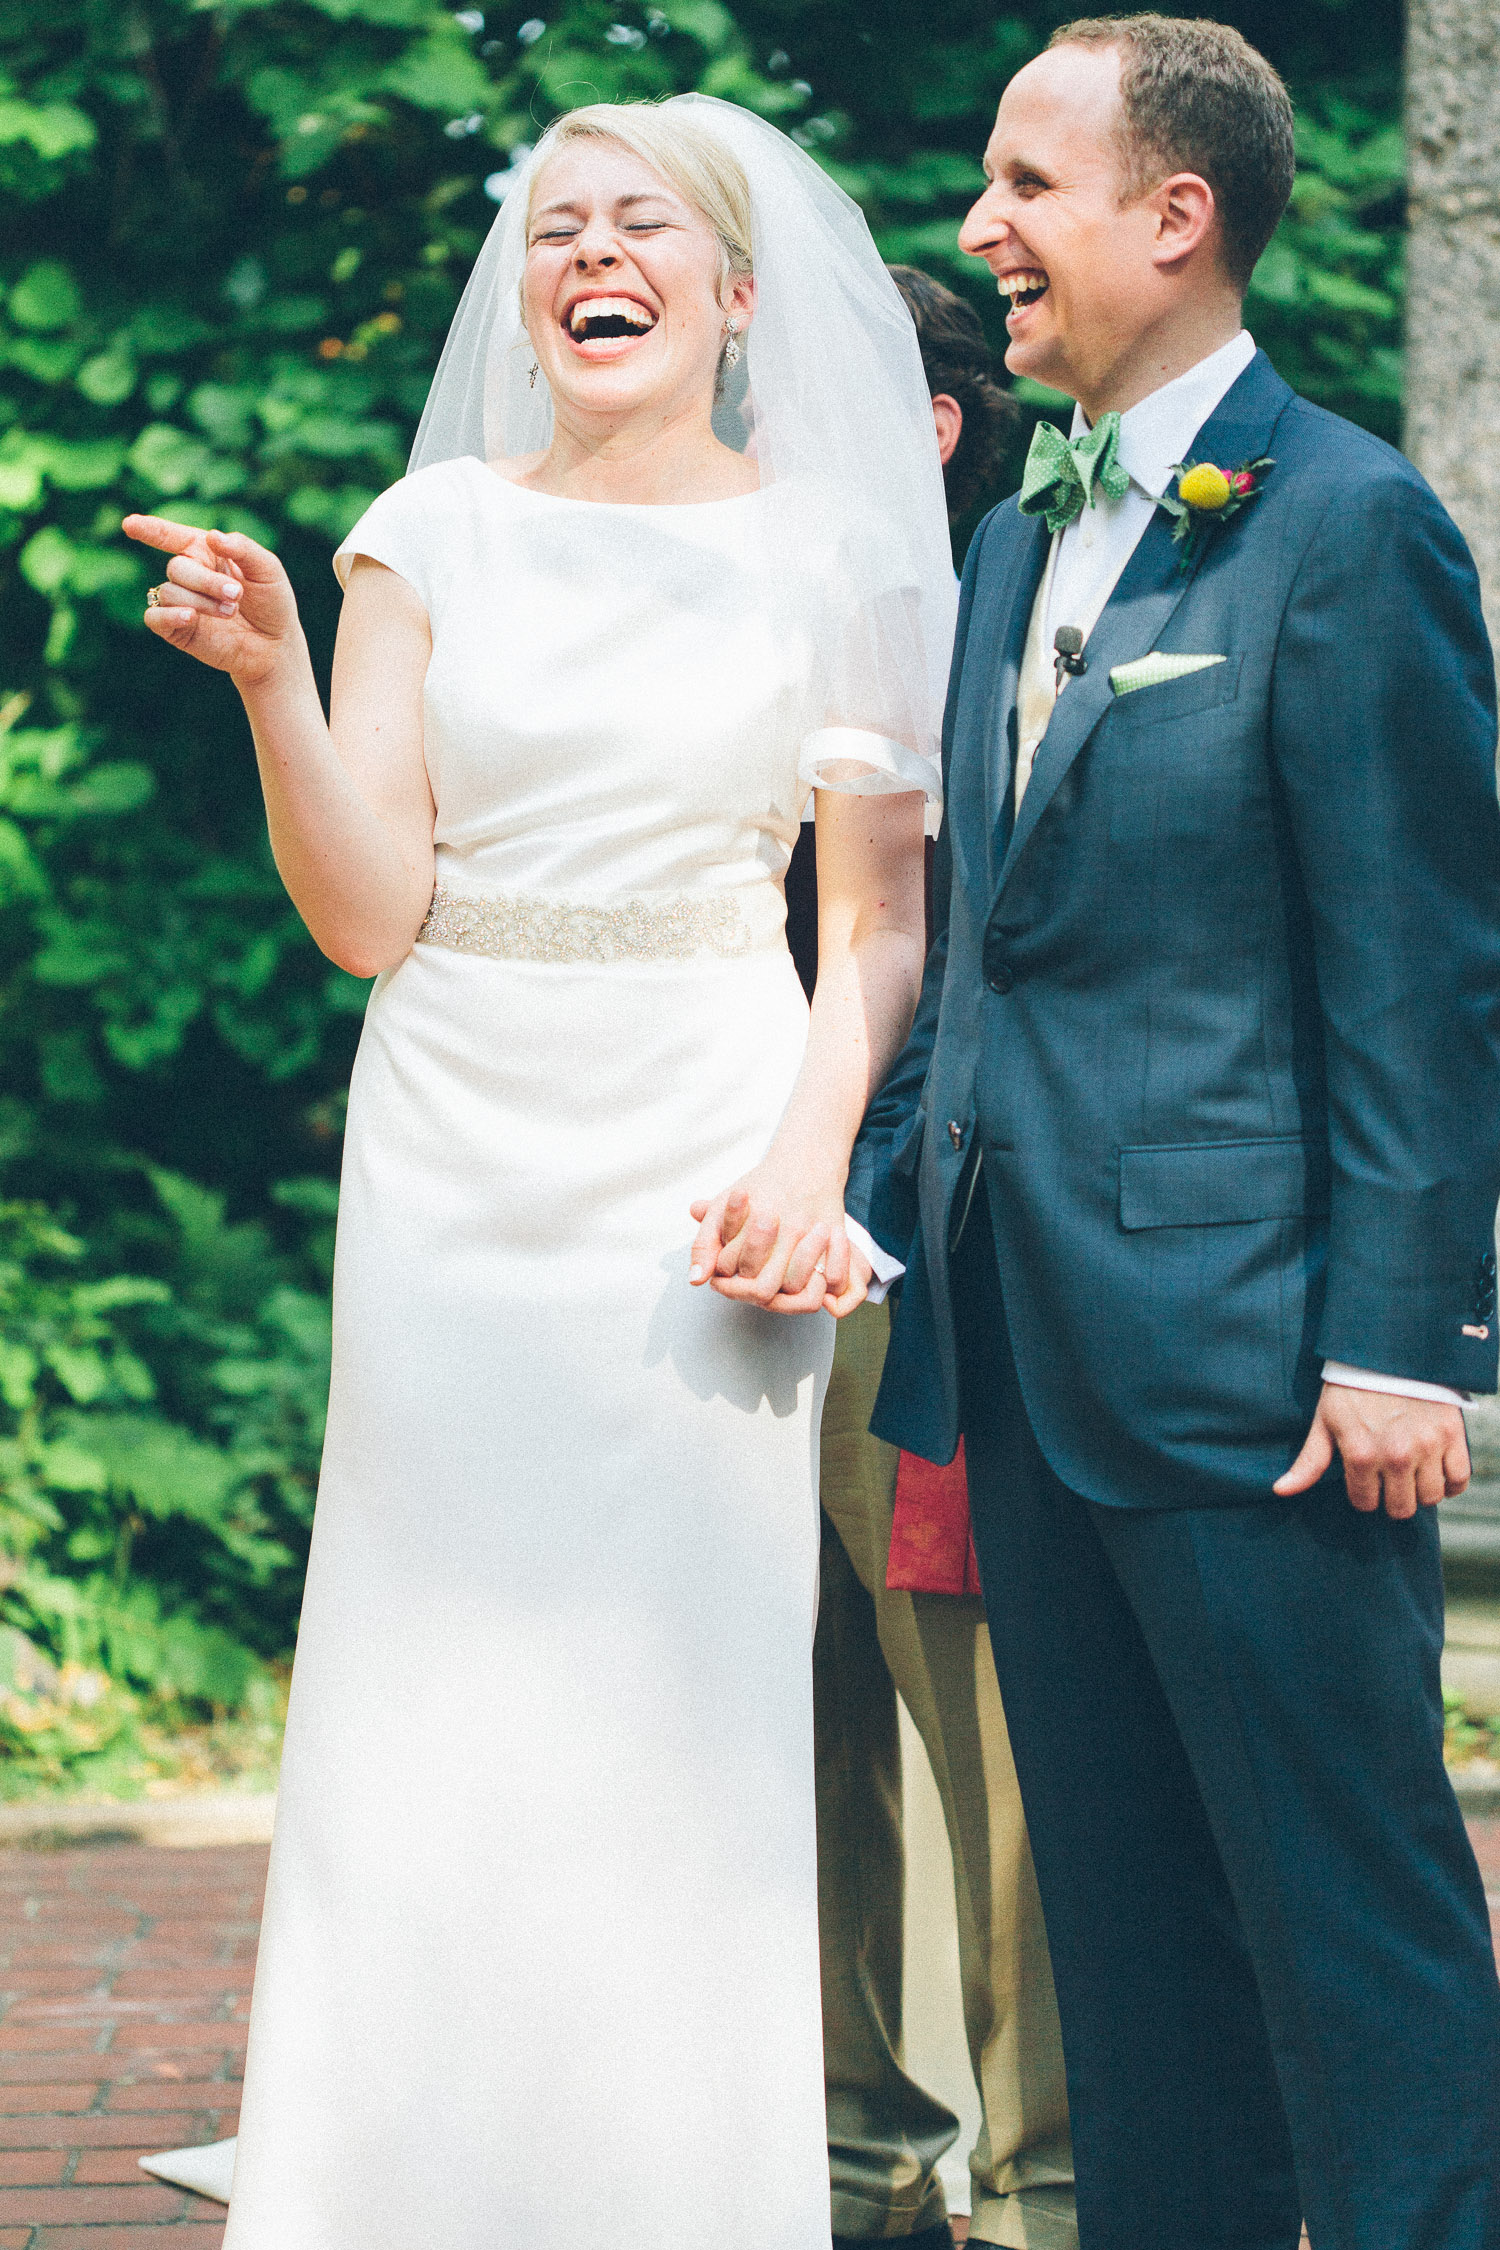 How cute is this couple? I love the groom's choice of a slate blue wedding suit and billy ball boutonniere. His green bow tie is adorable too! I love the beautiful bride's veil and unstoppable laugh. She looked no less than stunning.